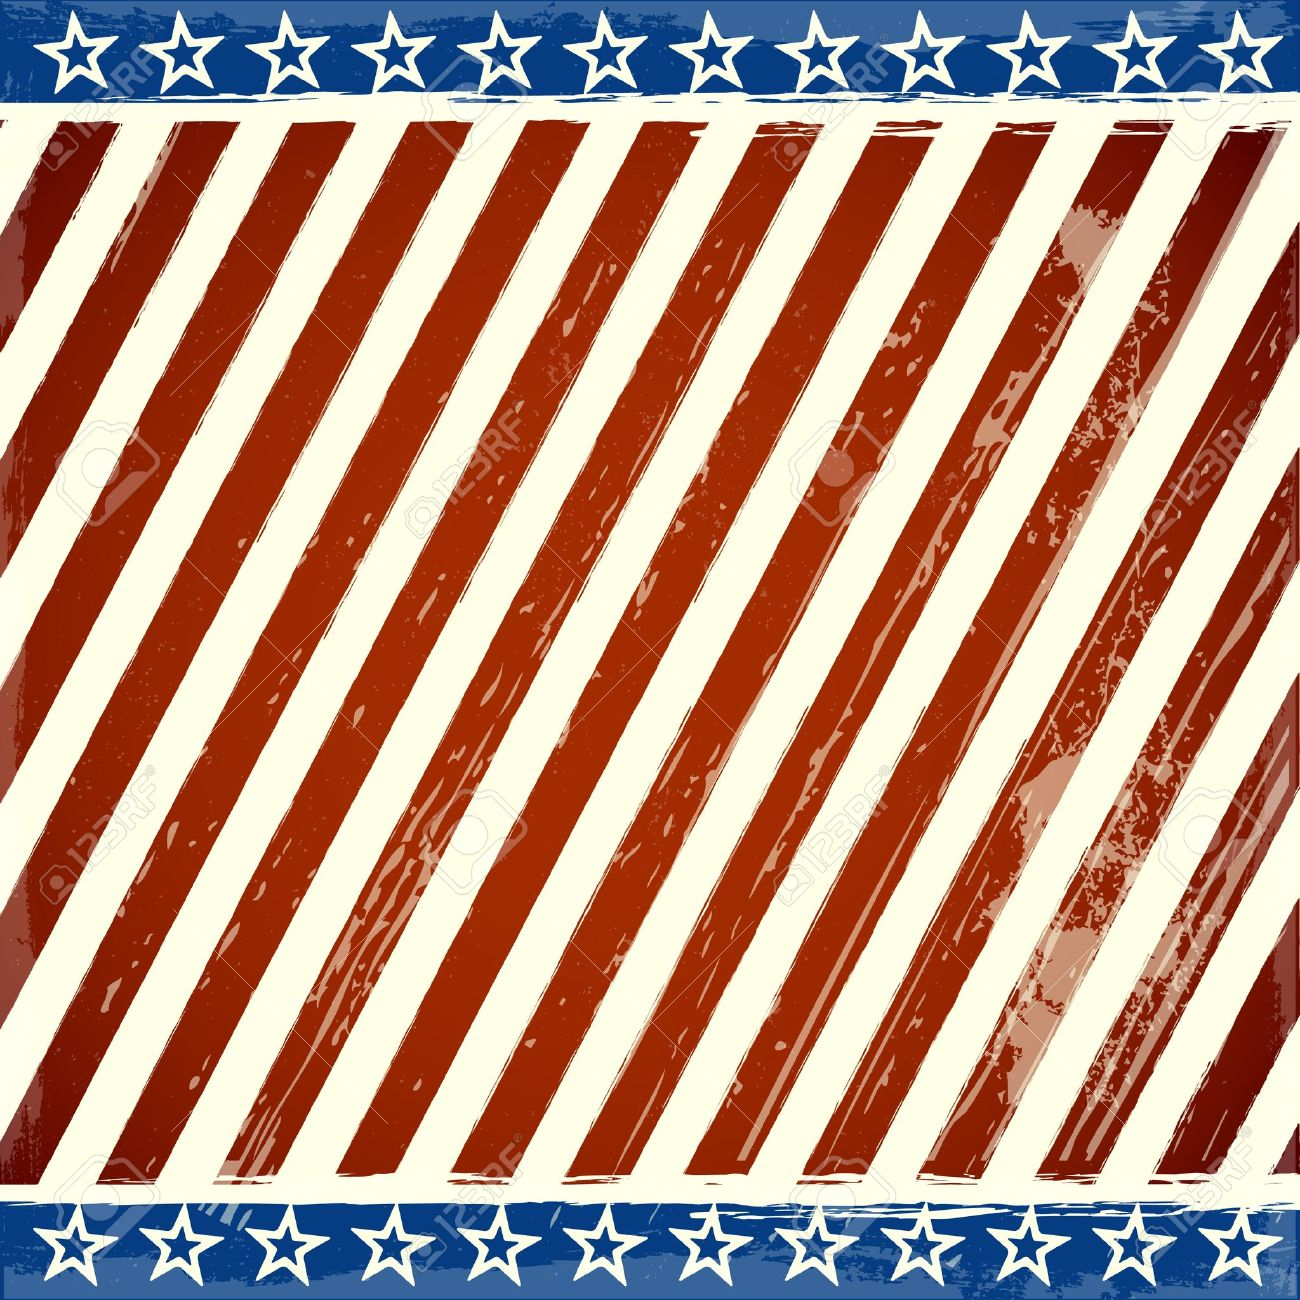 detailed illustration of a patriotic stars and stripes background with grunge elements Stock Vector - 20235208